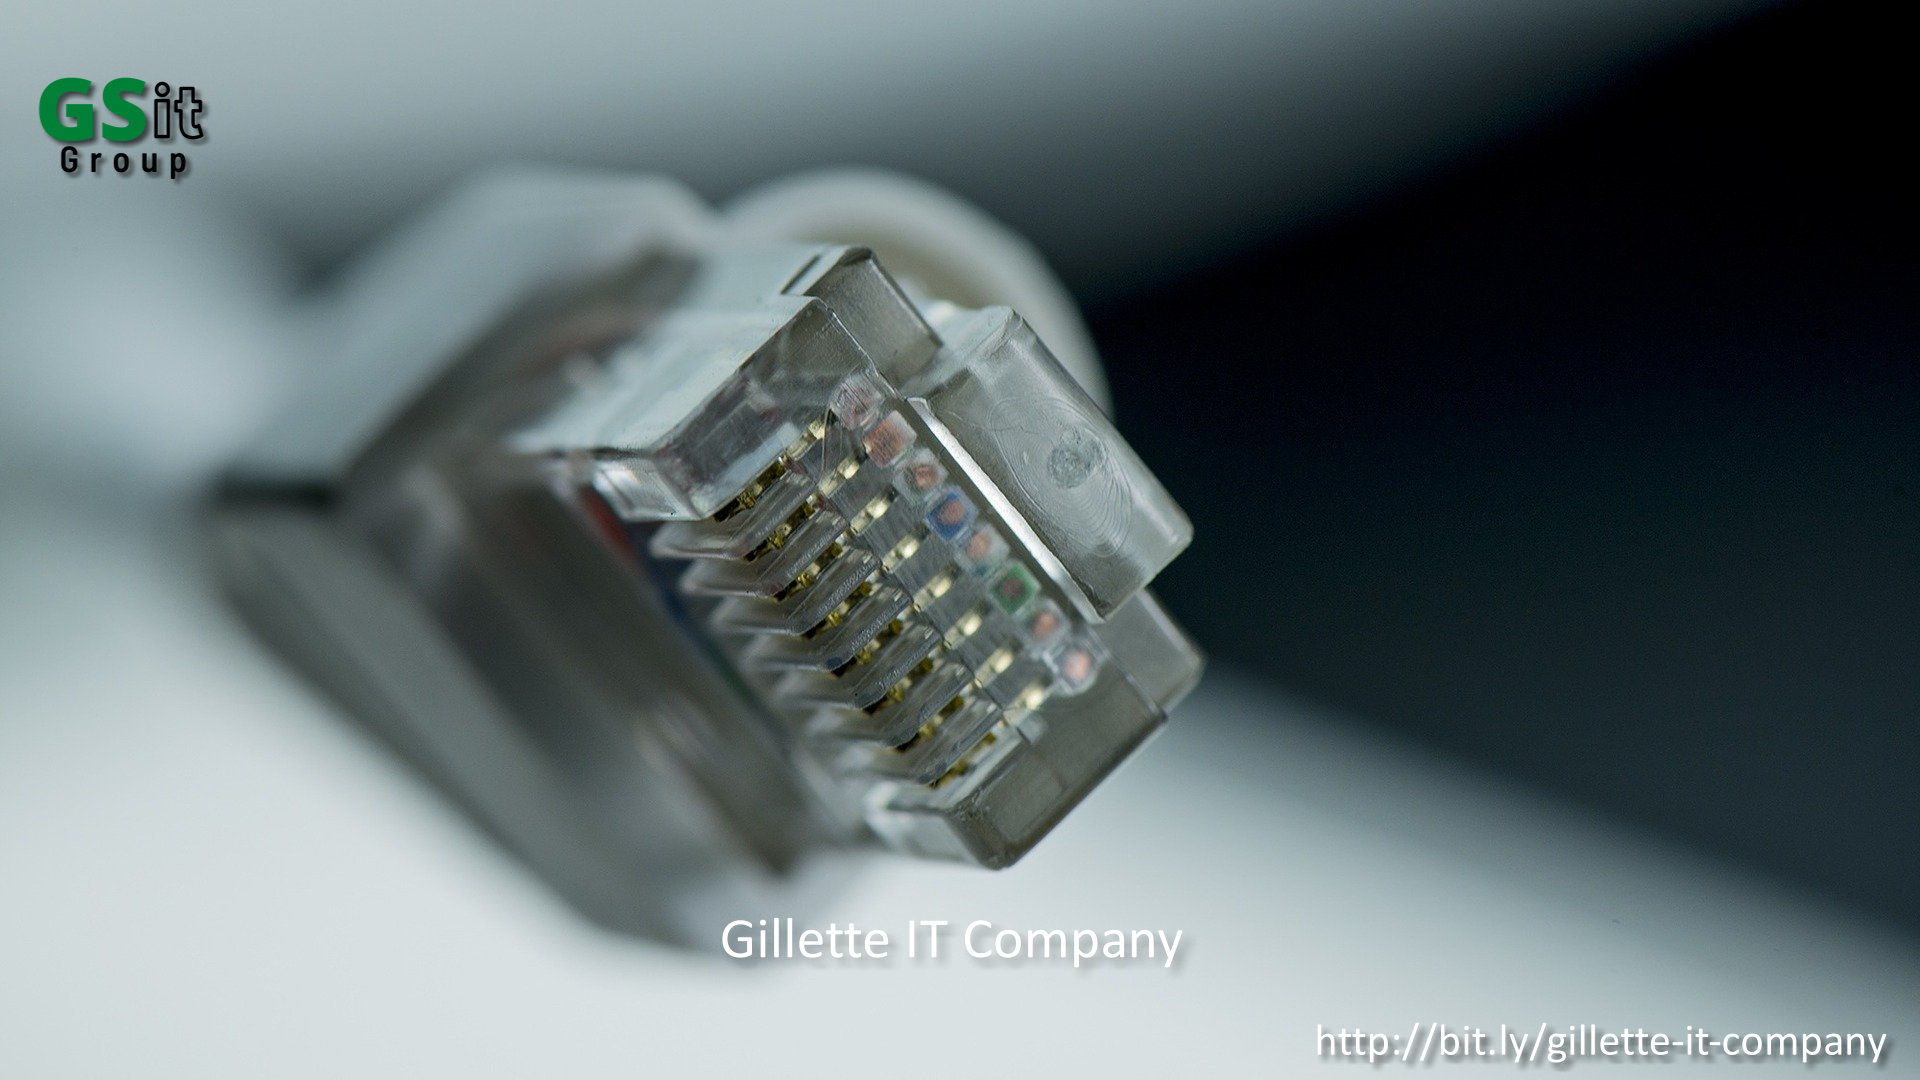 GSIT Group Gillette Launches Wifi Network Optimization Gillette